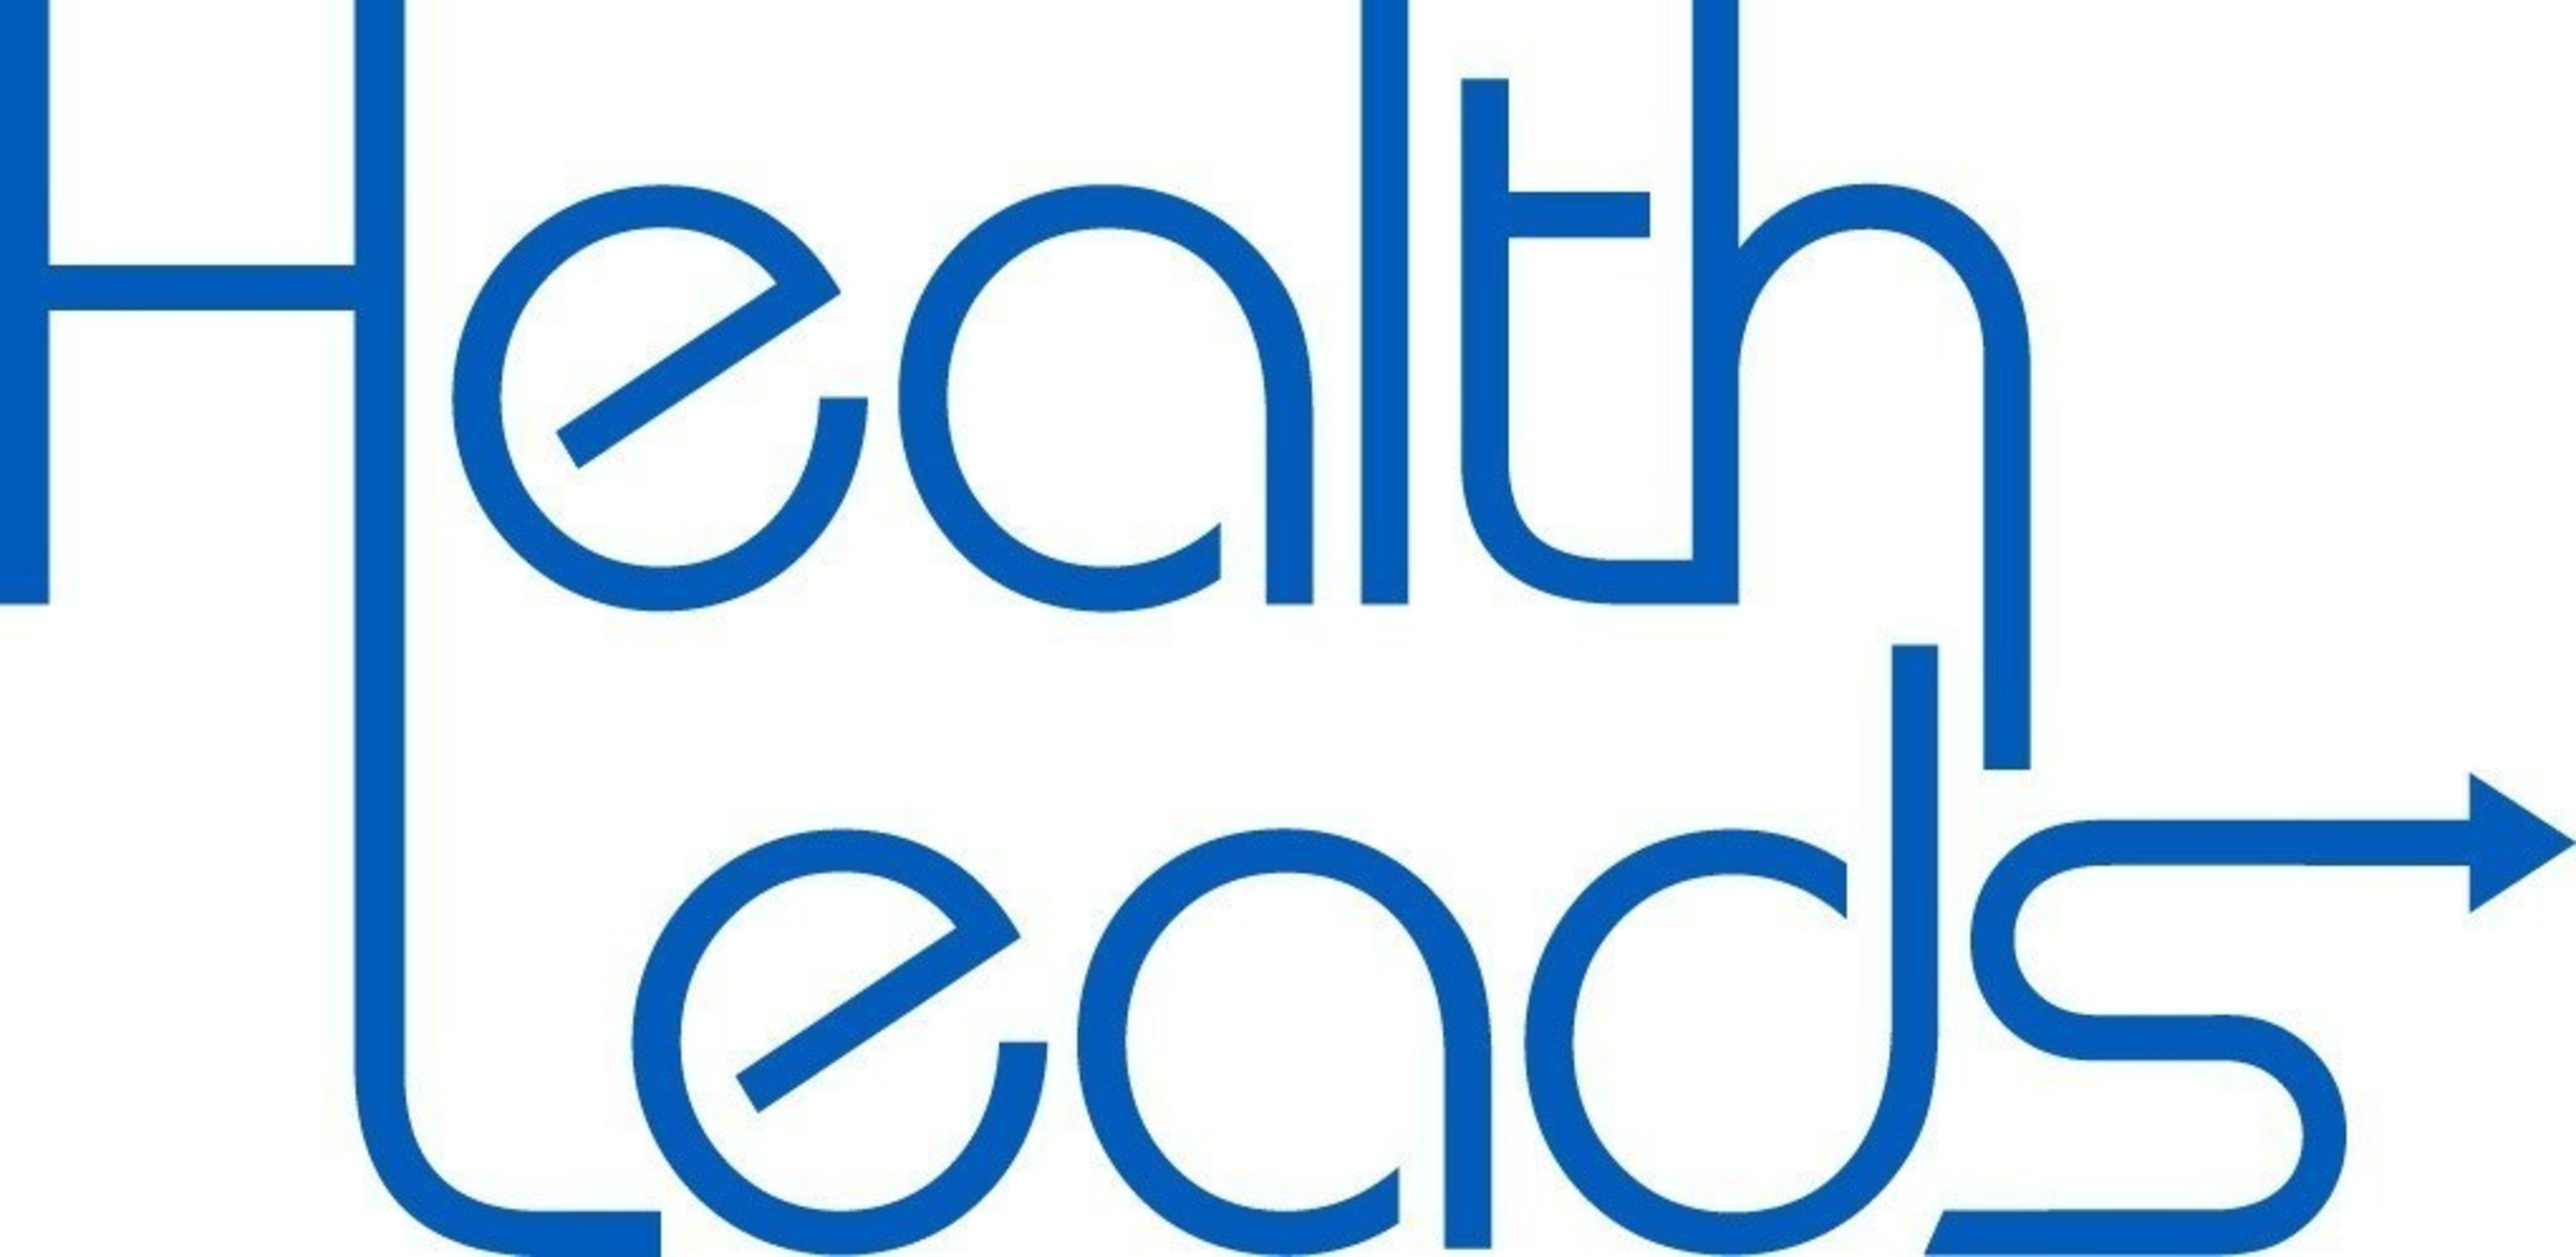 Health Leads is a social enterprise that envisions a healthcare system that addresses all patients' basic resource needs as a standard part of quality care. (PRNewsFoto/Health Leads)